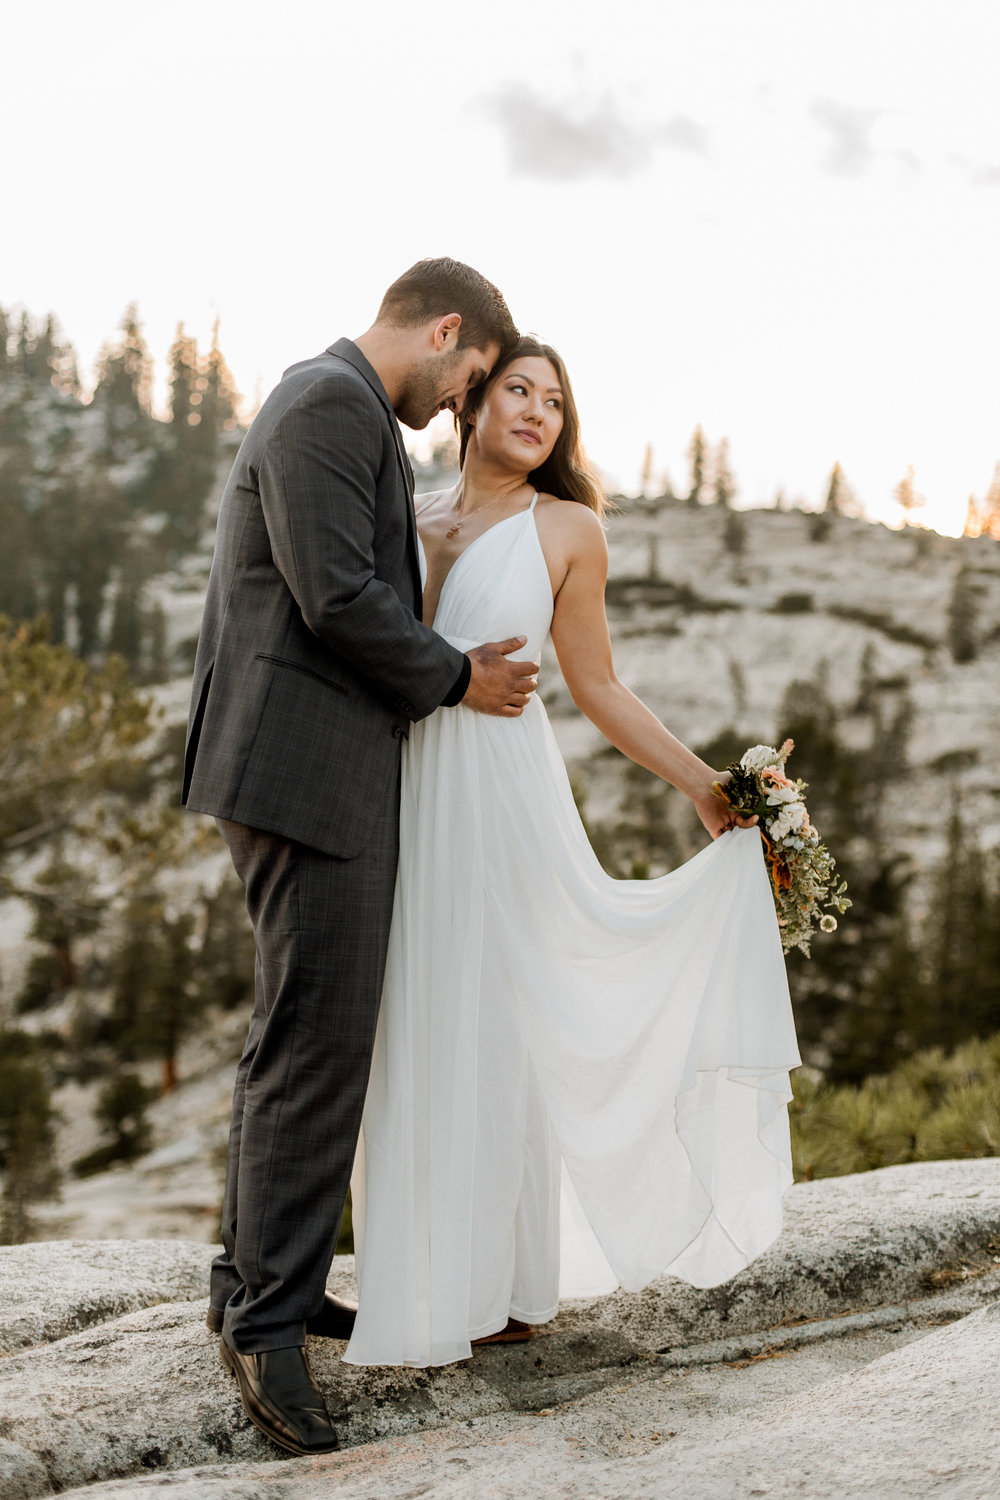 nicole-daacke-photography-yosemite-national-park-fall-elopement-adventurous-free-spirit-boho-bohemian-elopement-olmsted-point-yosemite-california-elope-adventure-elopement-photographer-28.jpg